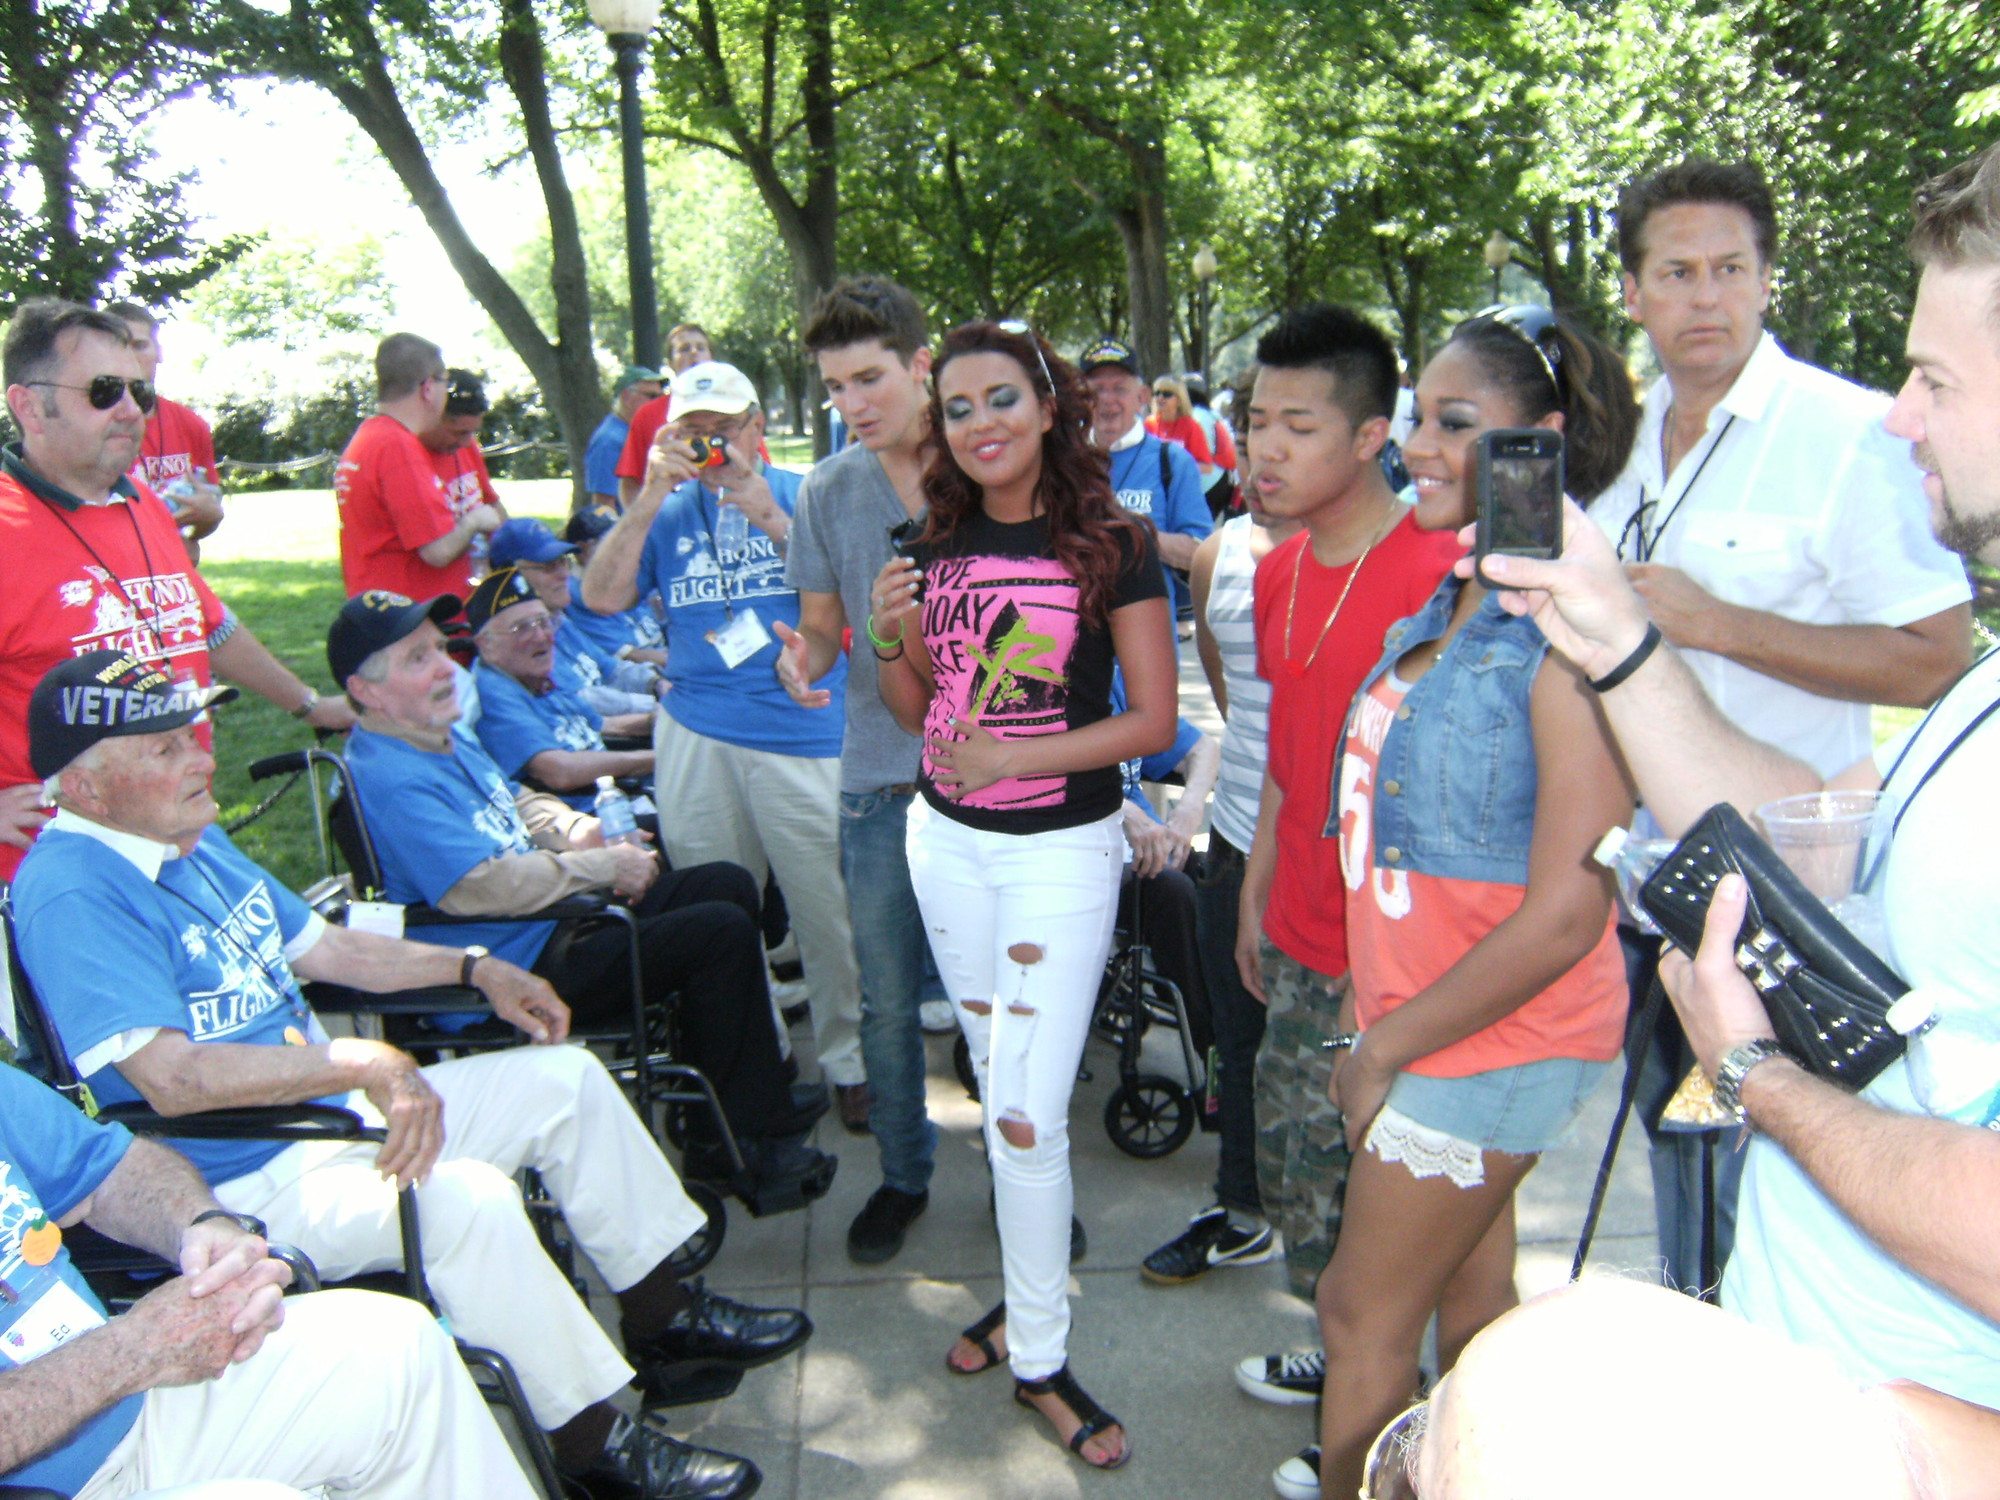 Onlookers in Washington, D.C., rushed to greet and photograph the veterans at the Washington Monument during an Honor Flight trip in June 2012.